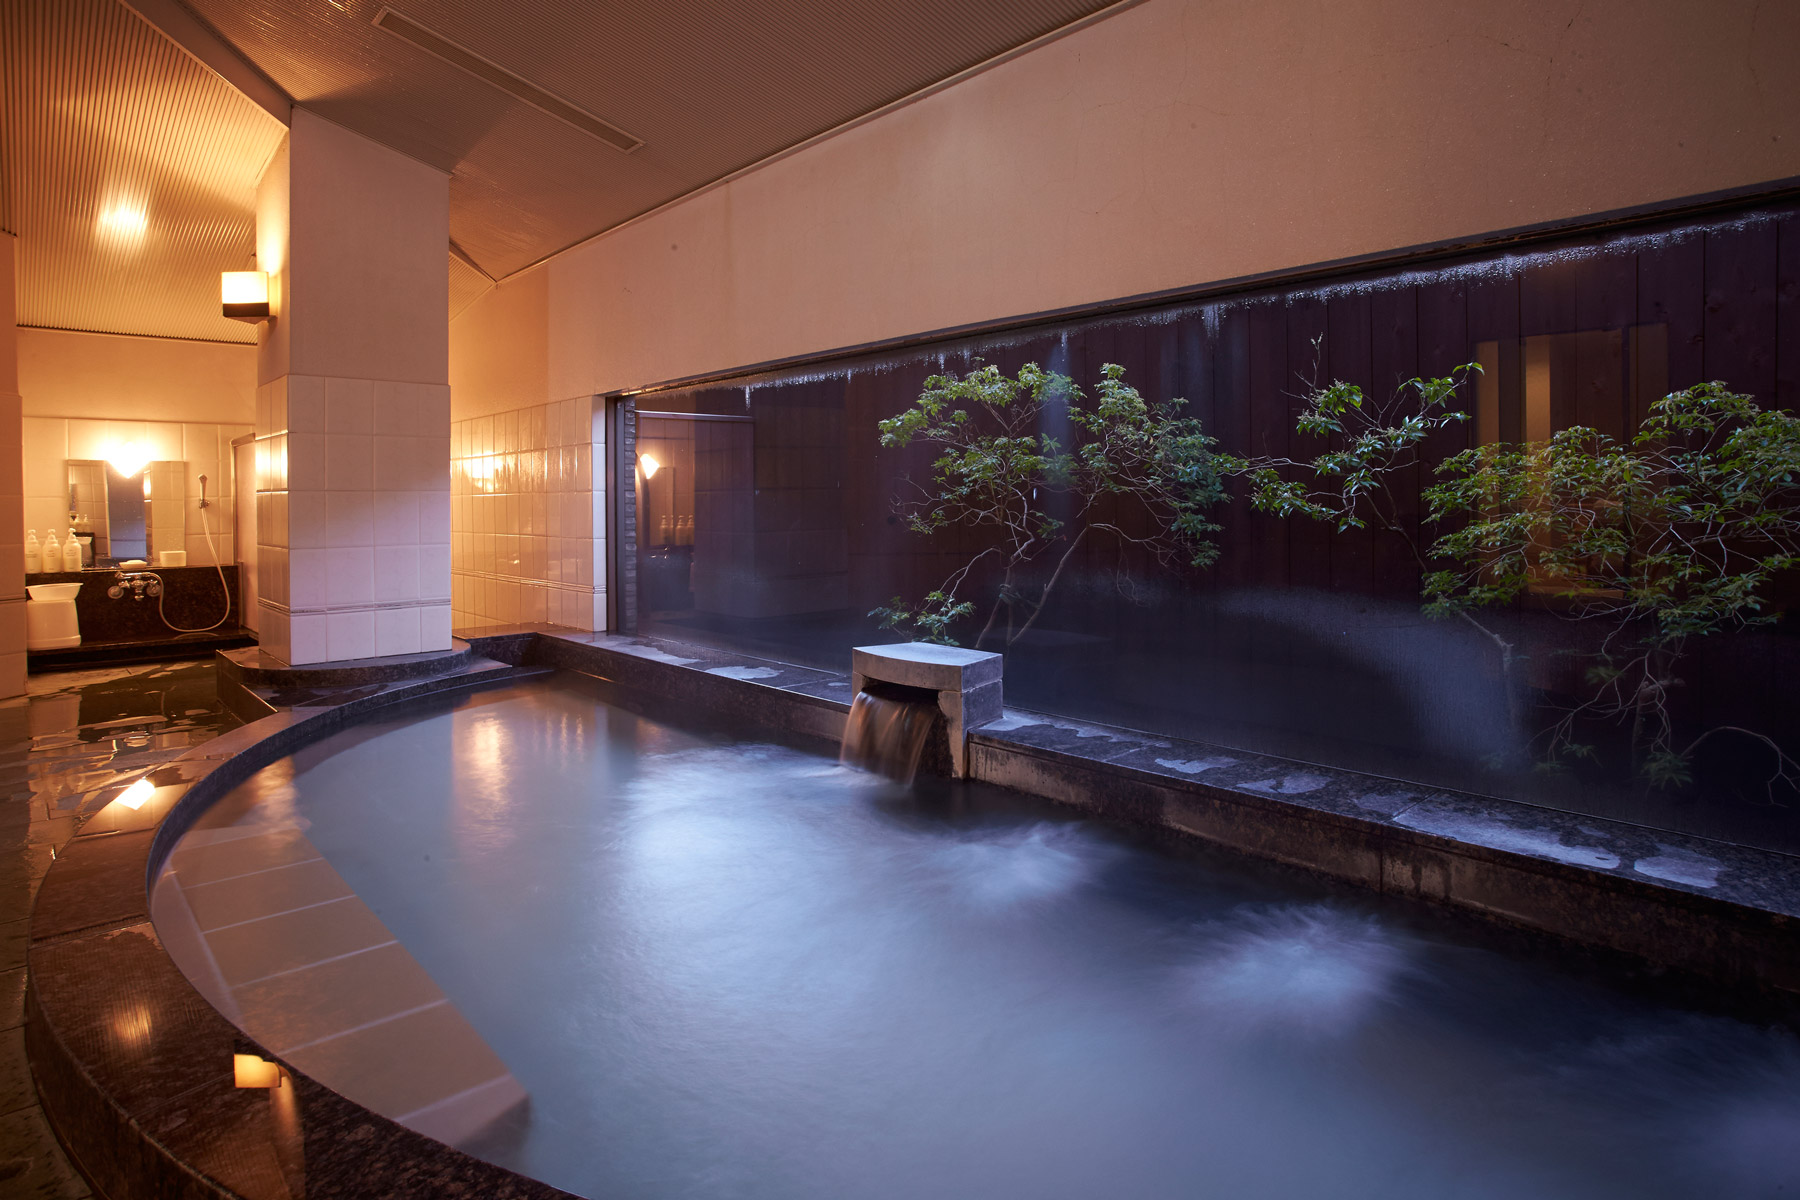 karuizawa-japan-golf-resort-hot-spring.jpg